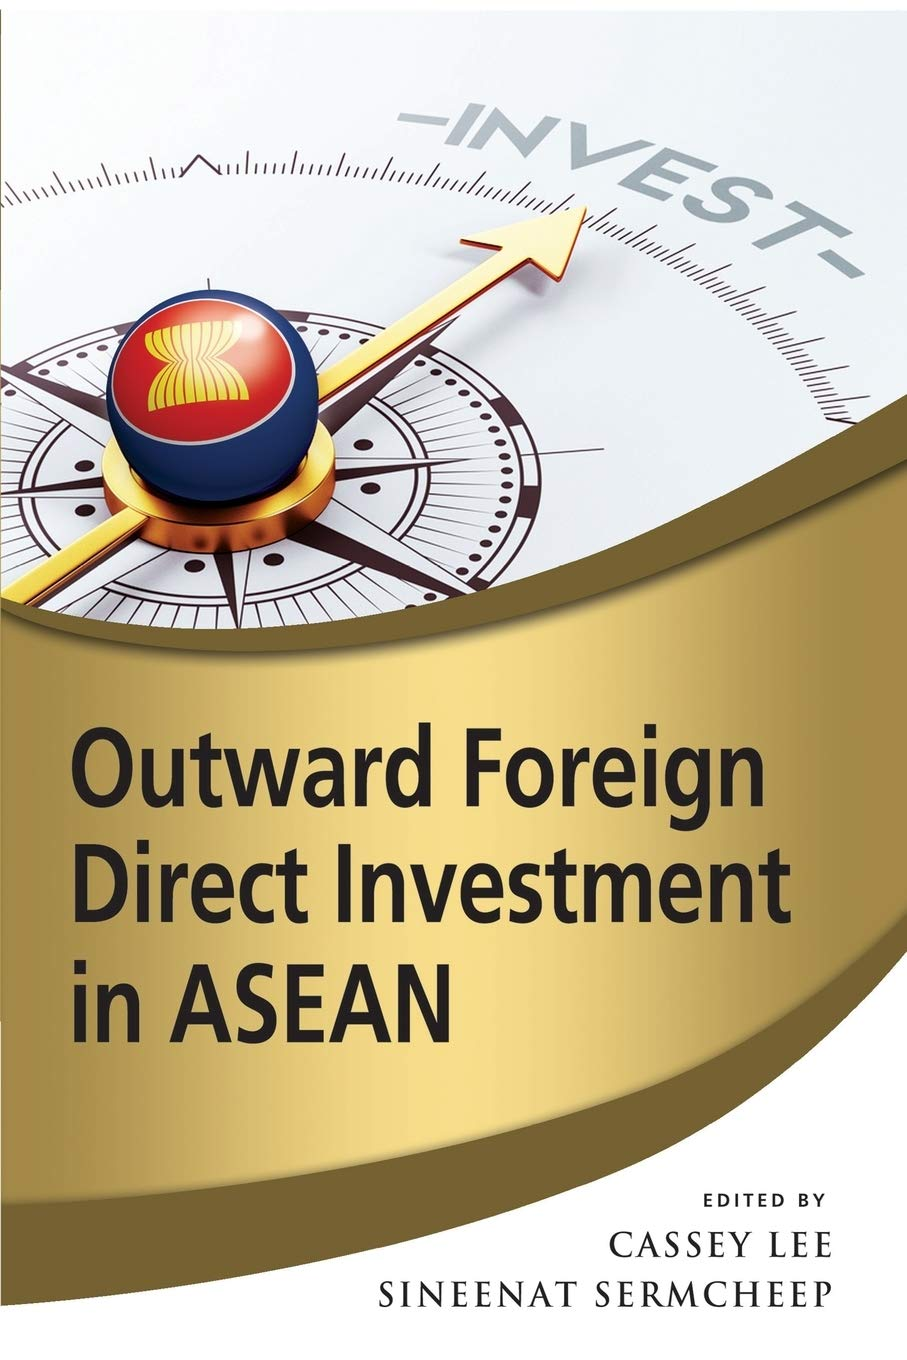 Foreign direct investment in myanmar 2021 movies covington investments ted mcmullen